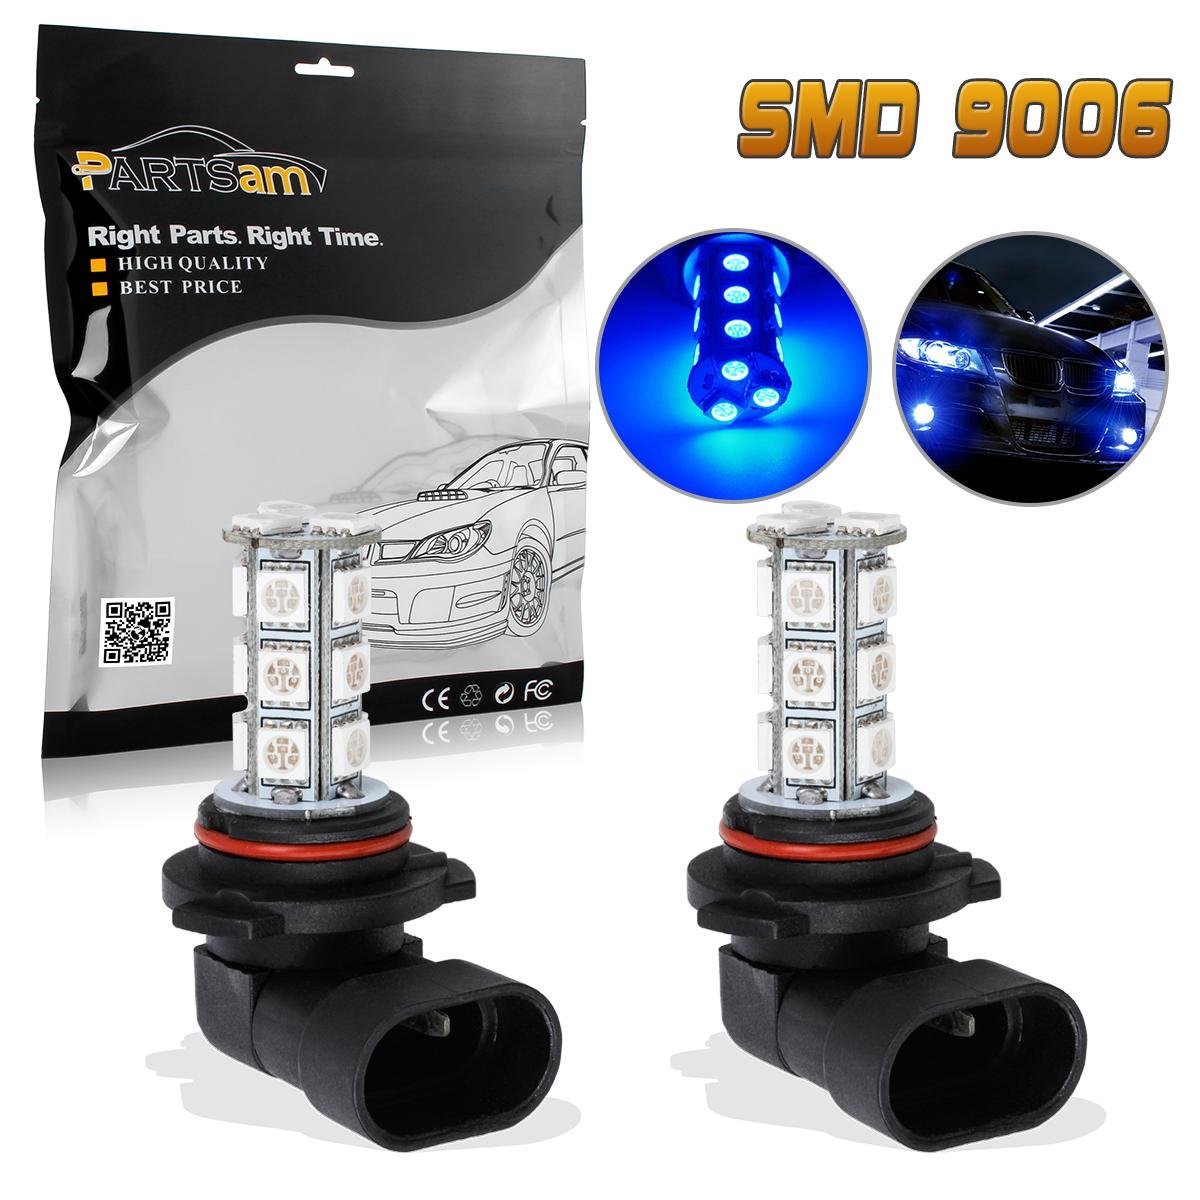 Partsam 2pcs Bright Blue HB4 9006 9006XS Fog Driving Daytime Running Light 18-5050-SMD DRL LED Bulb Replacement for Infiniti Compatible with Hyundai//Chrysler//Mercedes-Benz//BMW//Lexus//Mazda//Dodge